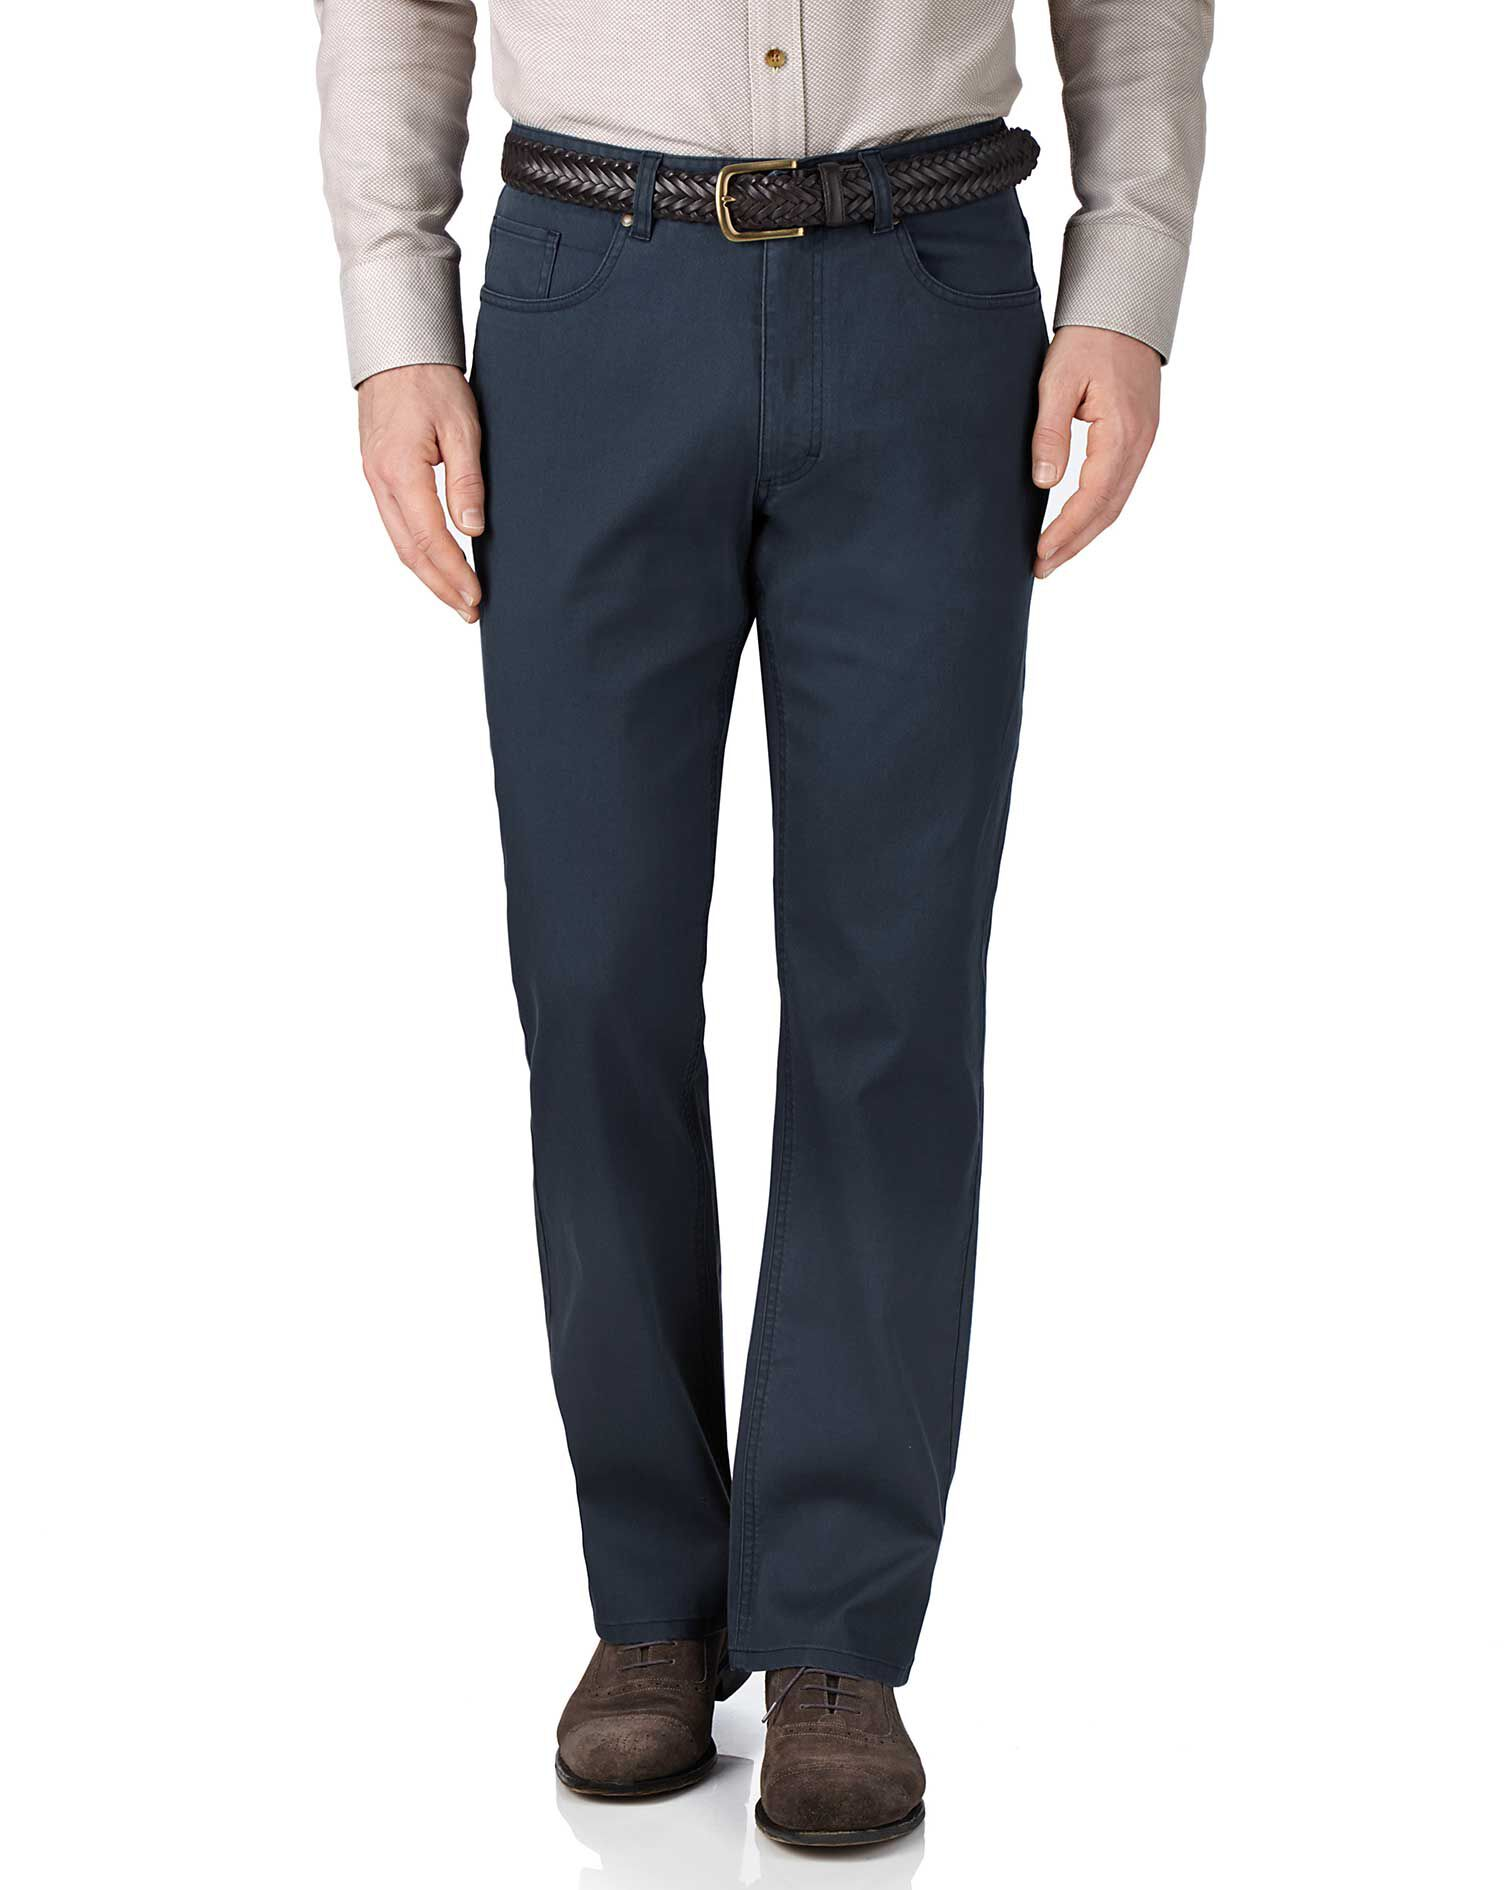 Blue Classic Fit Stretch Pique 5 Pocket Trousers Size W38 L34 by Charles Tyrwhitt